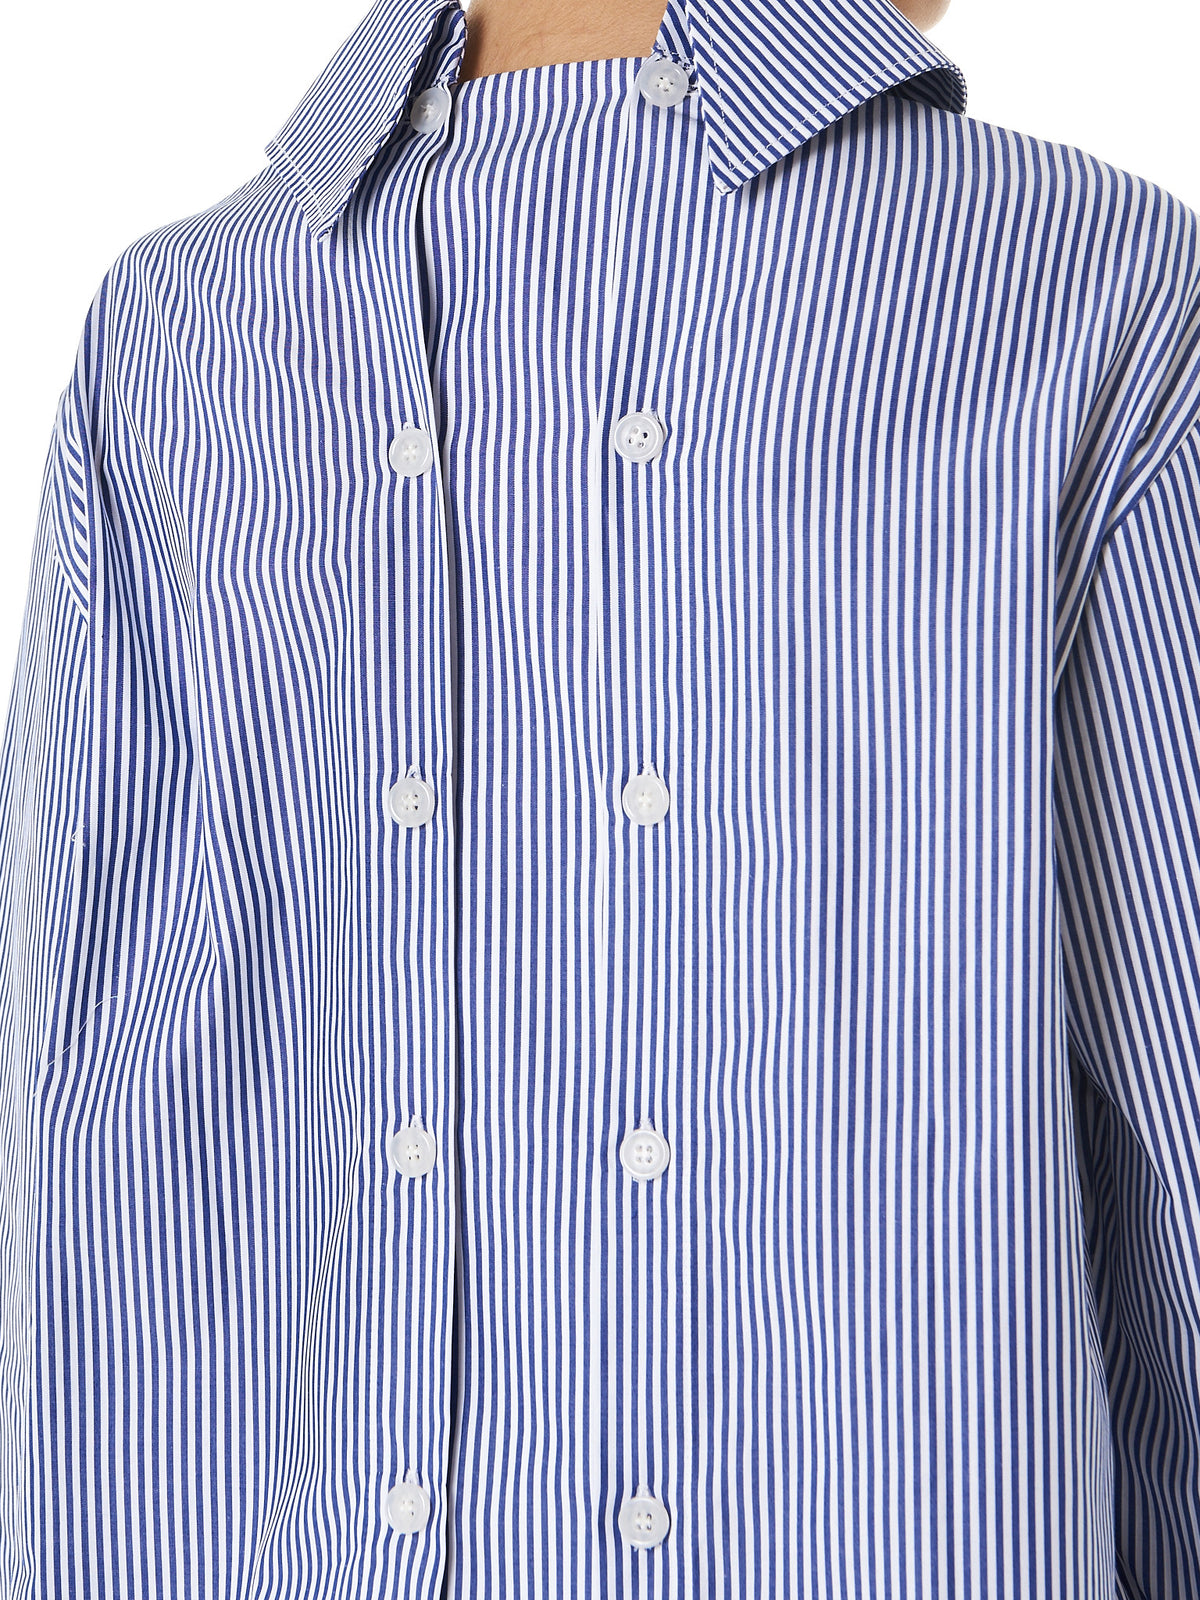 'Exaggerated' Collar Button-Down(SH04-W-STRIPES-NAVY-WHITE) - H. Lorenzo